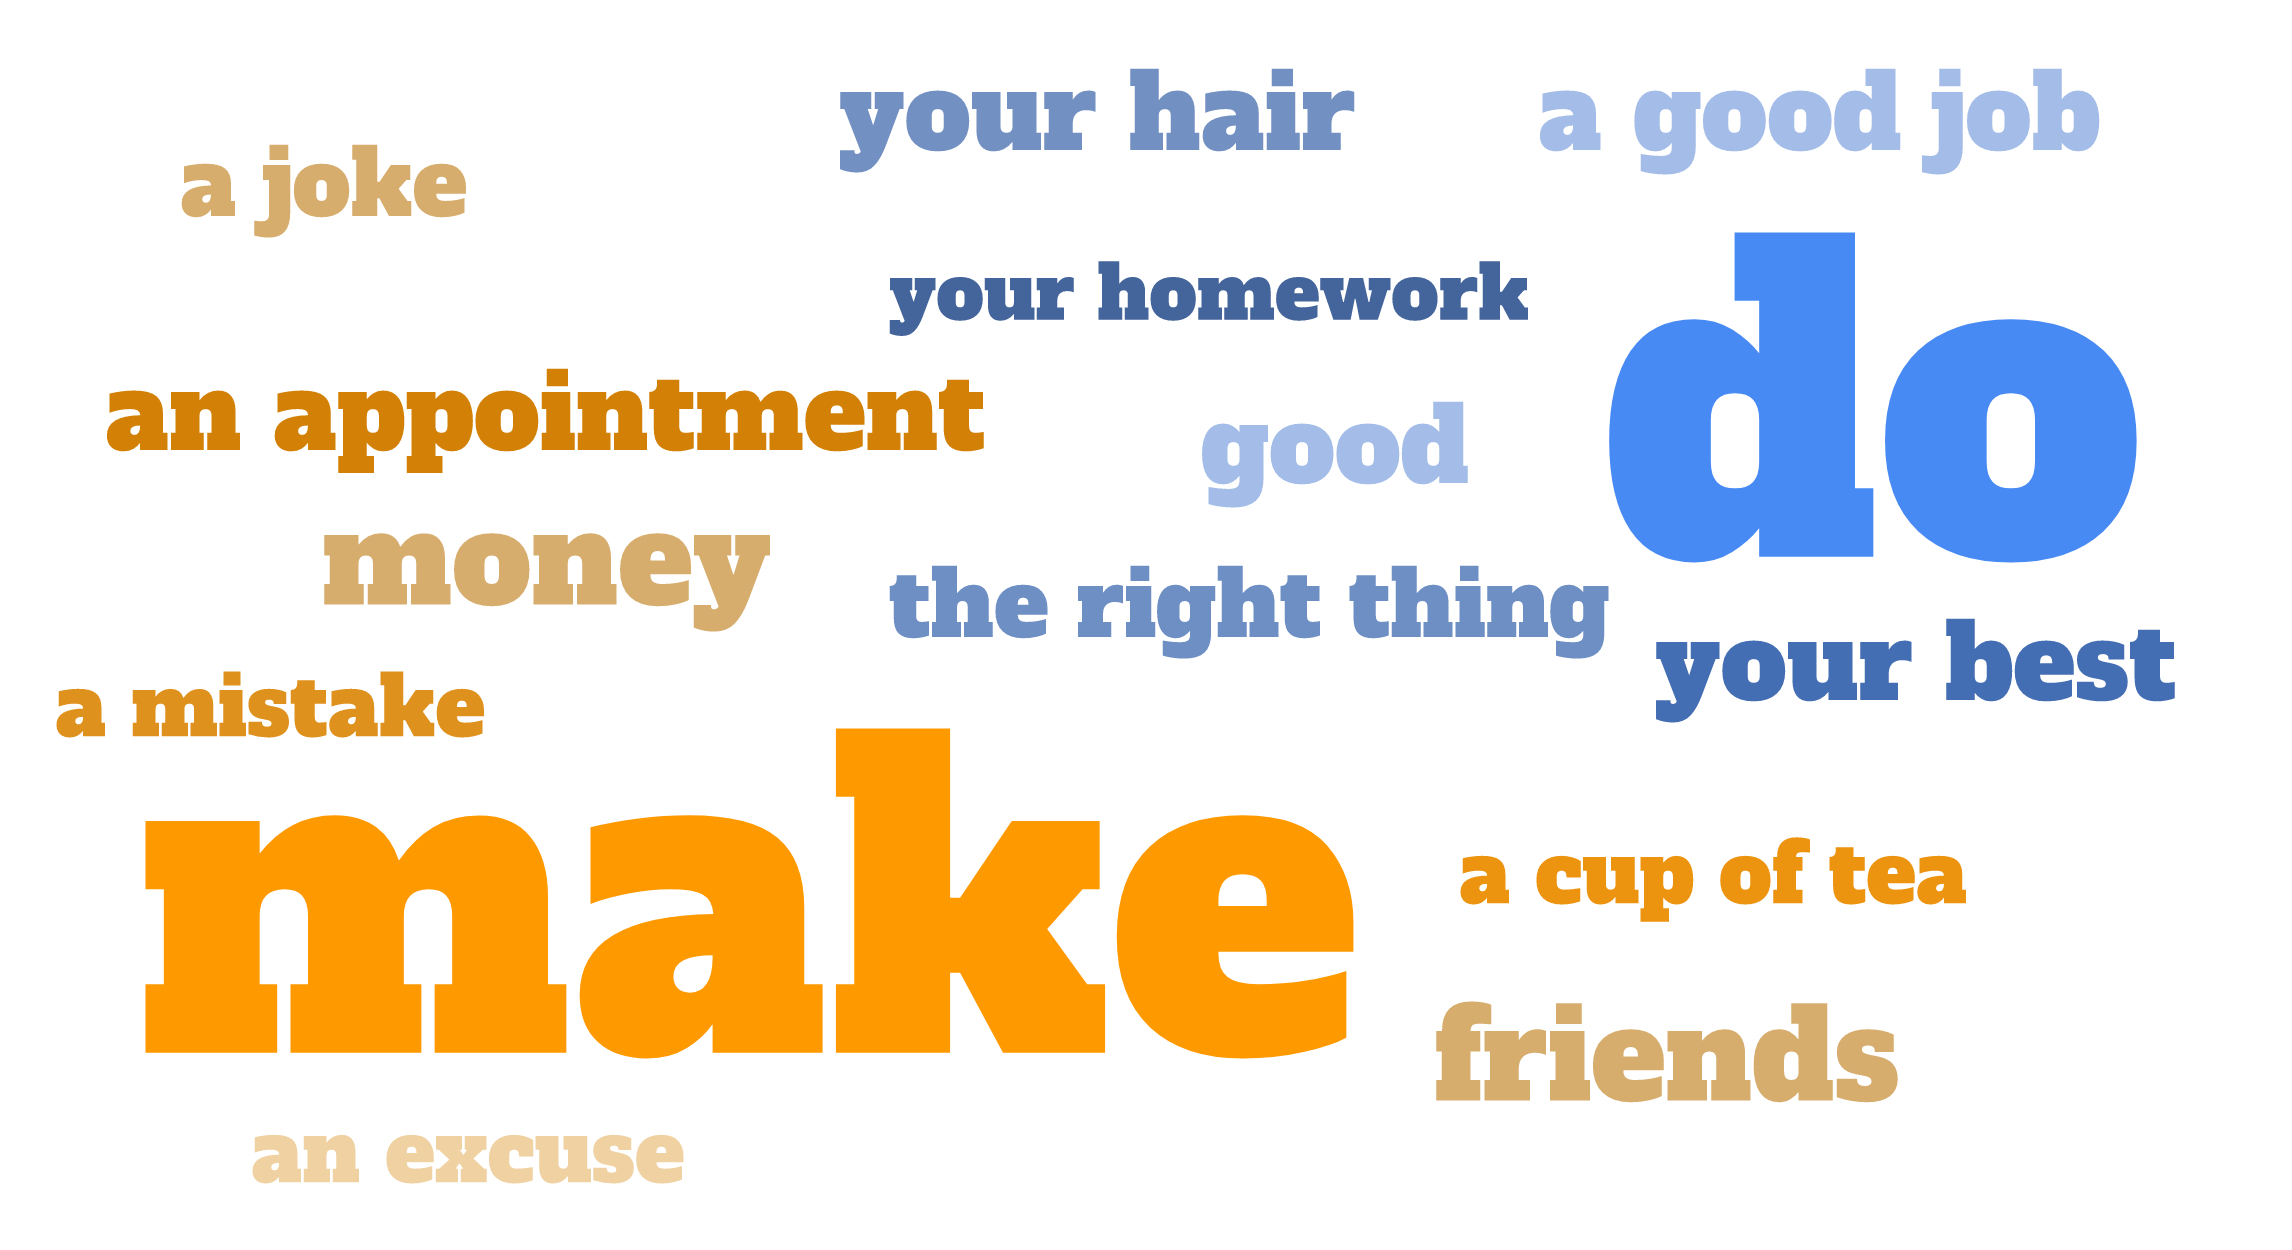 """Collocations: make vs do. Words which relate to the word """"make"""" are in orange: a joke, an appointment, money, a mistake, a cup of tea, friends, an excuse 